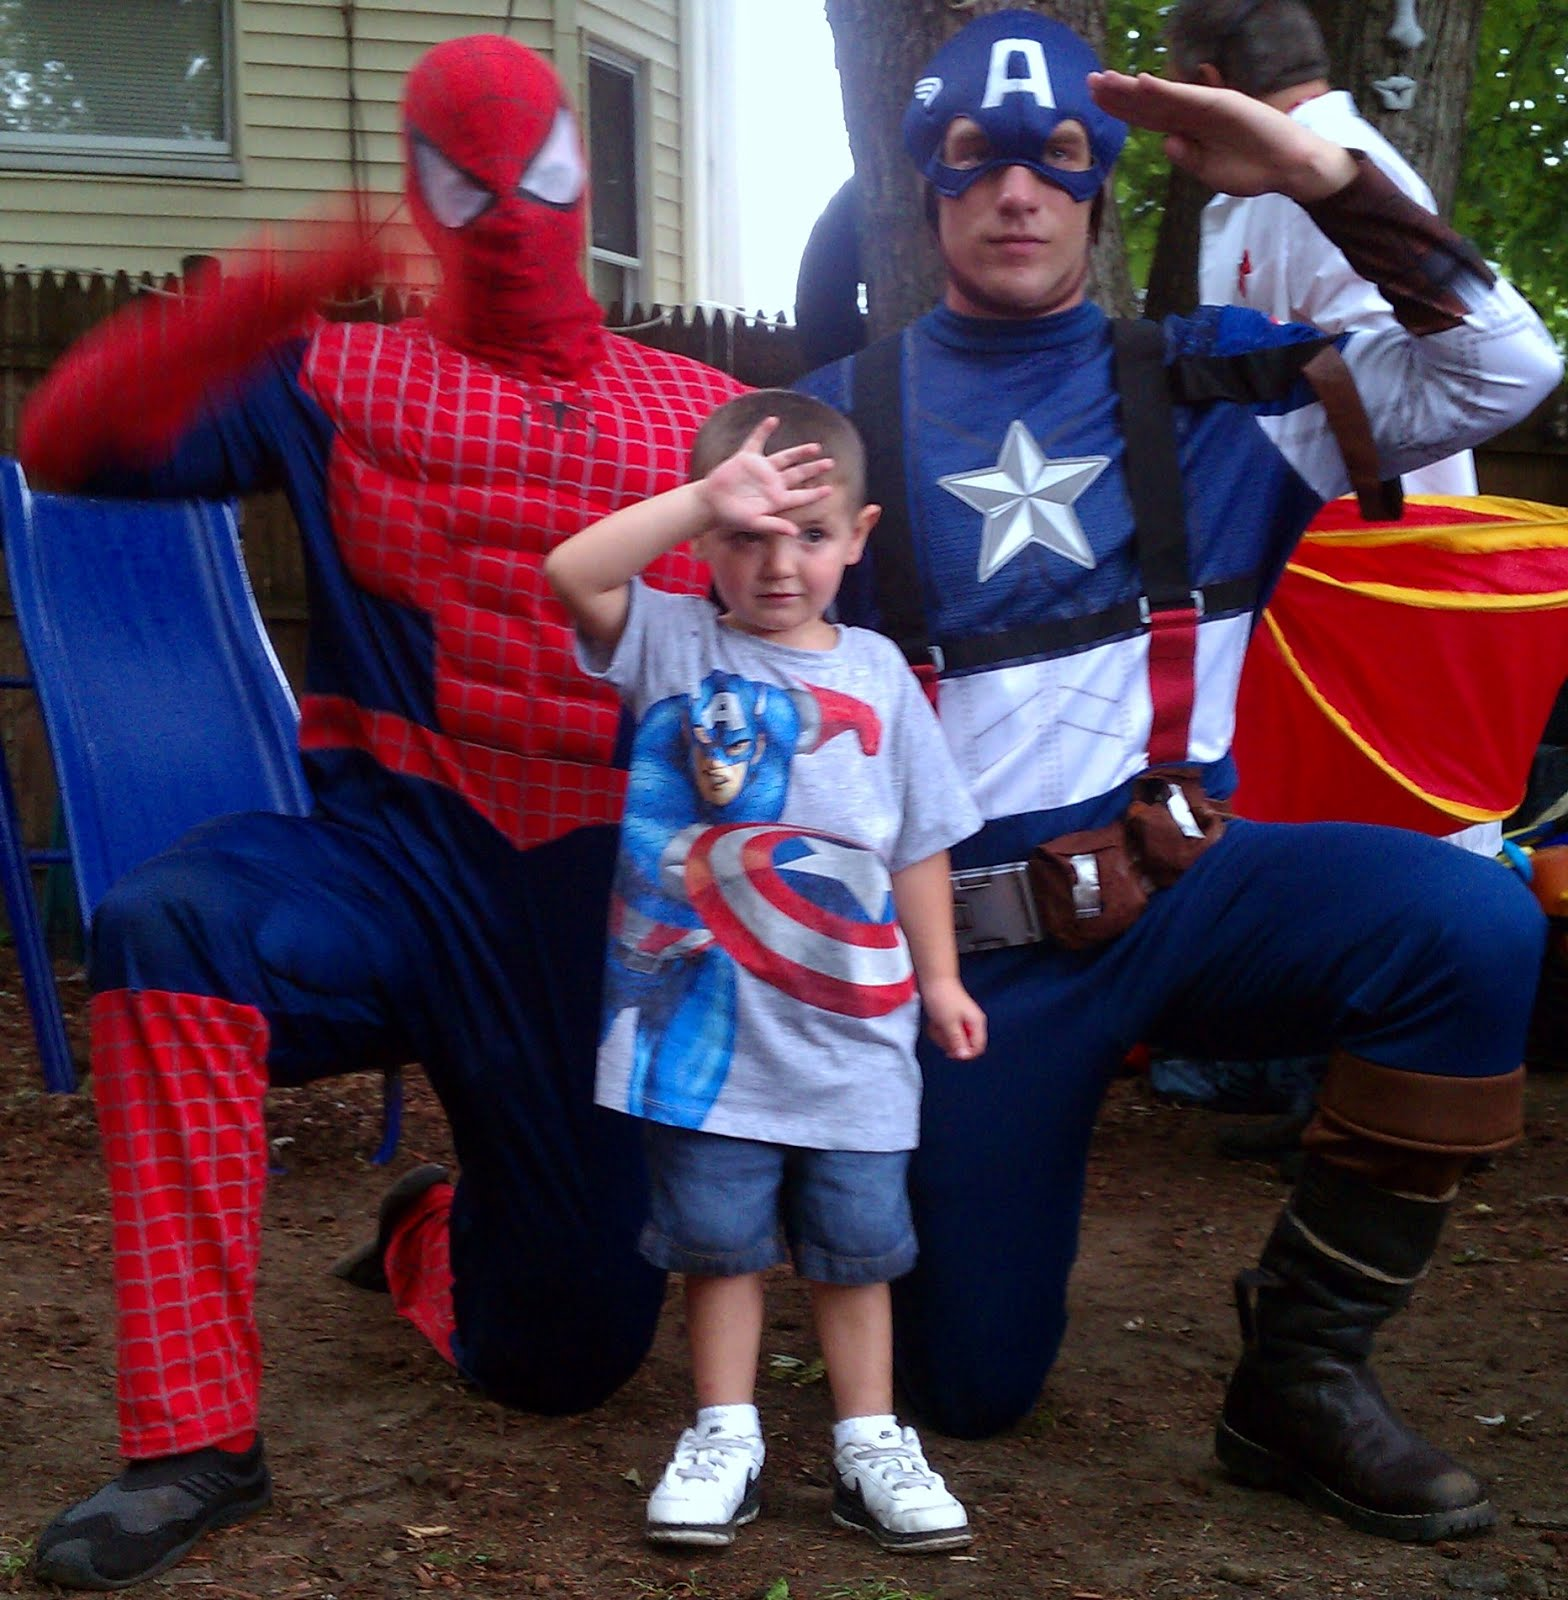 Spiderman and Captain America